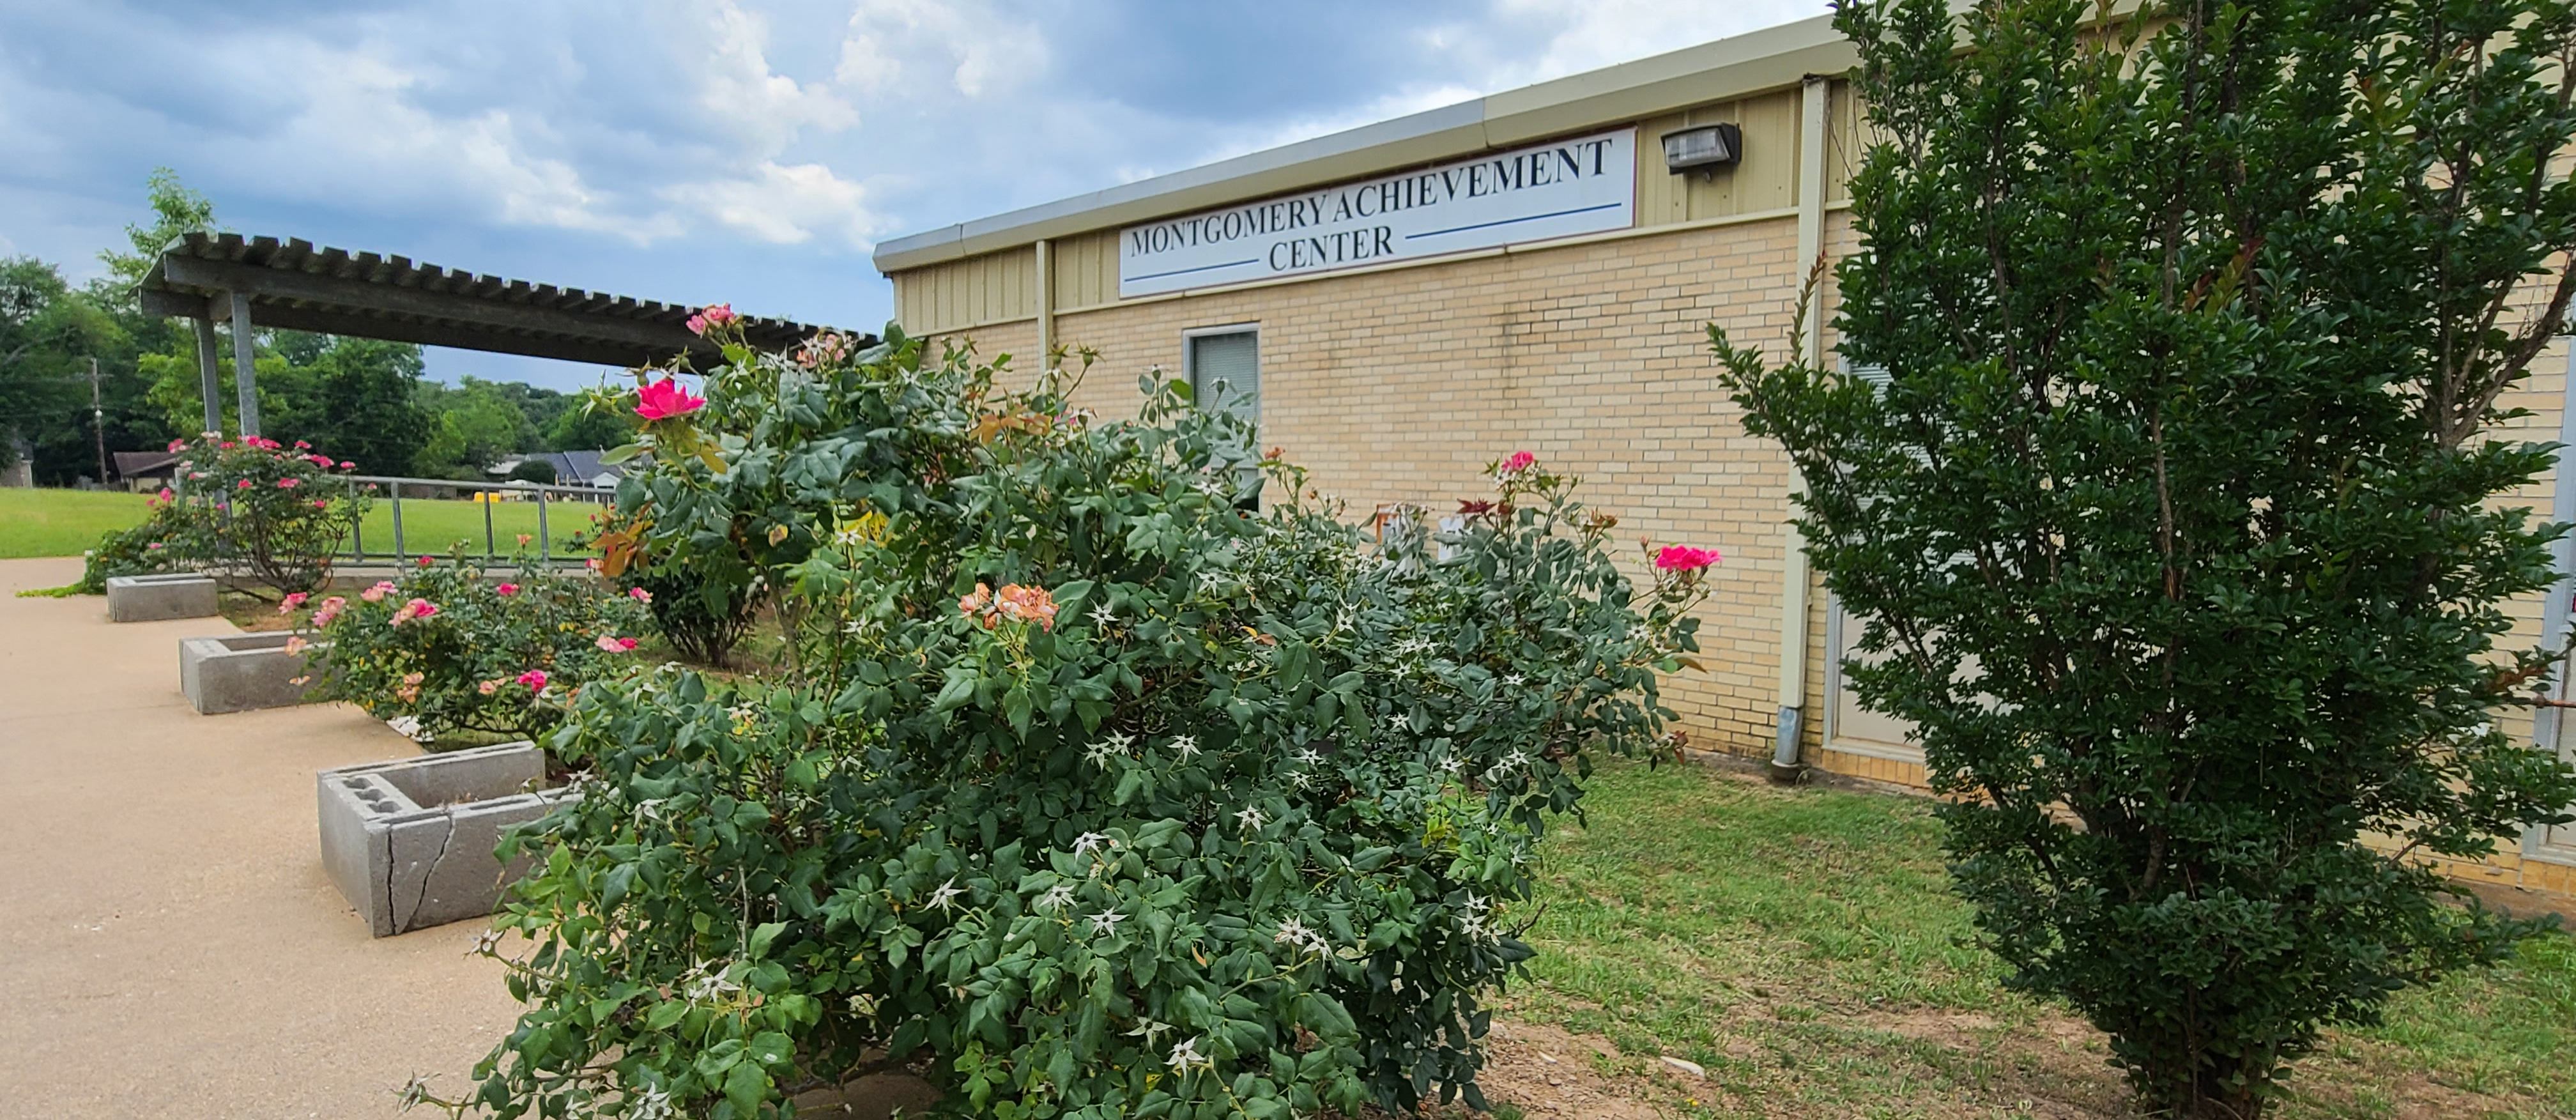 Montgomery Achievement Center